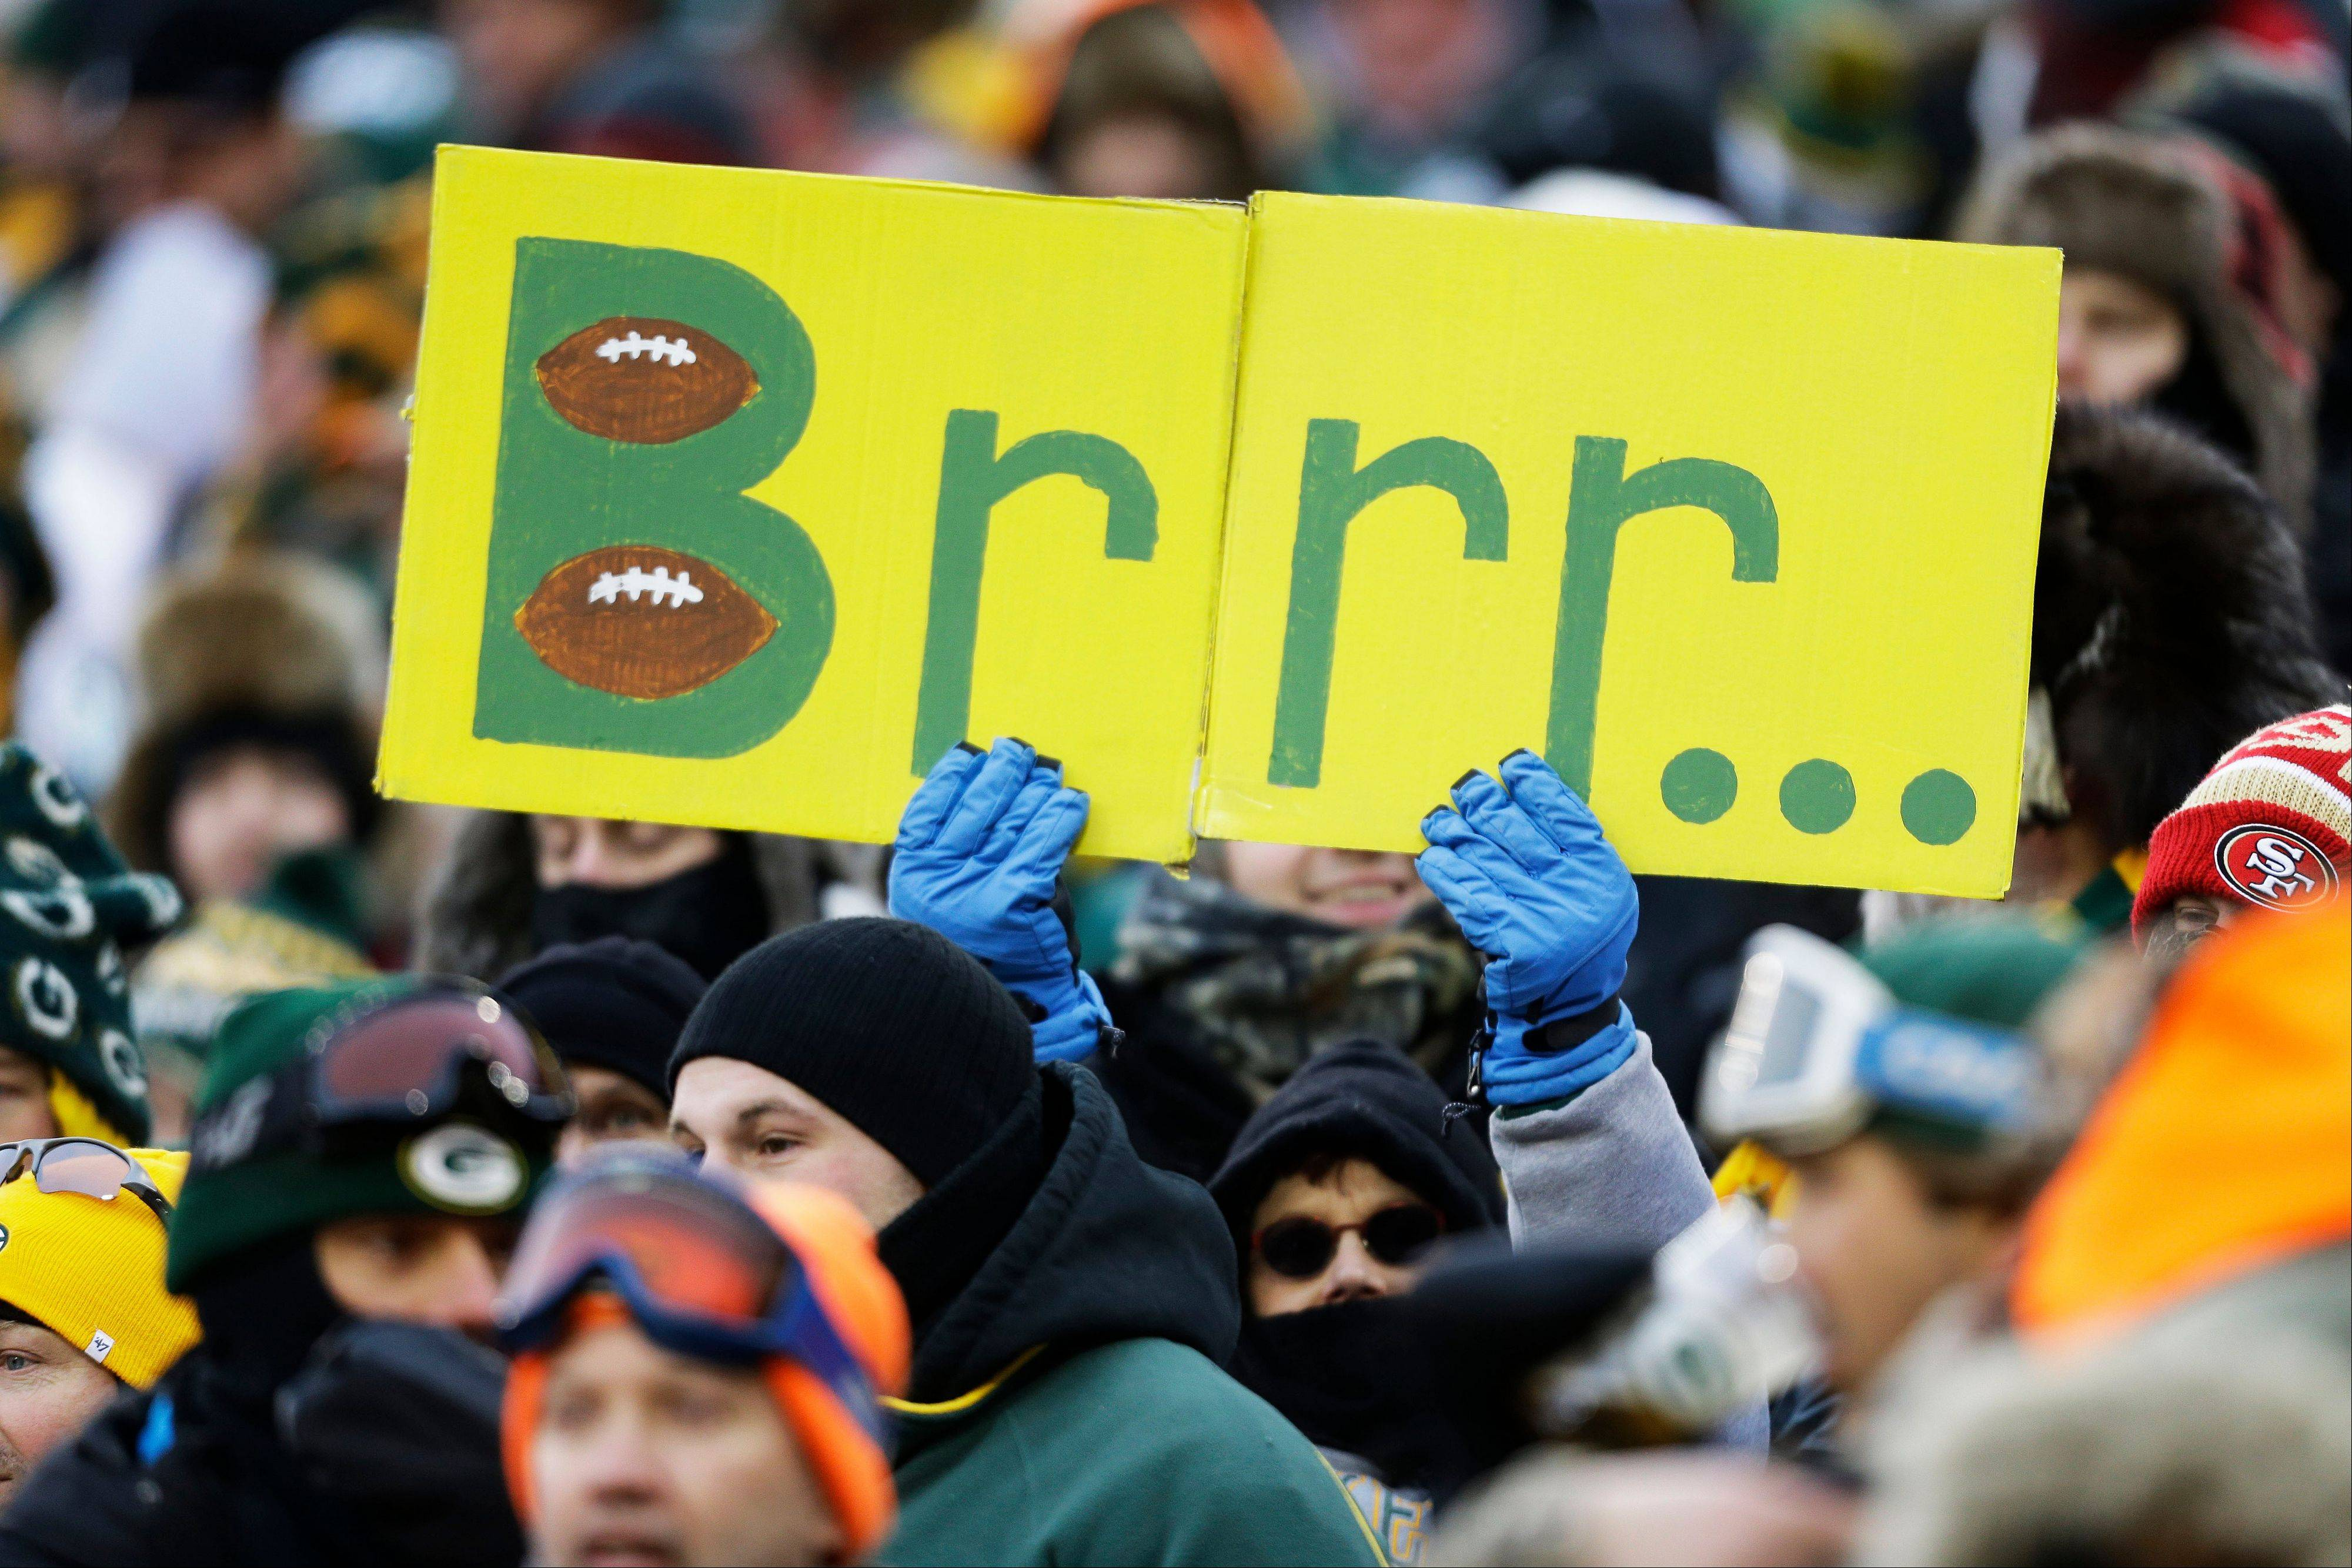 A fan holds up a weather-related sign during the first half of an NFL wild-card playoff football game between the Green Bay Packers and the San Francisco 49ers, in Green Bay, Wis. Fox Sports will use this weekend's NFC title game in Seattle between the San Francisco 49ers and the Seahawks to test an infrared camera that will show how players' body temperatures change throughout the game.